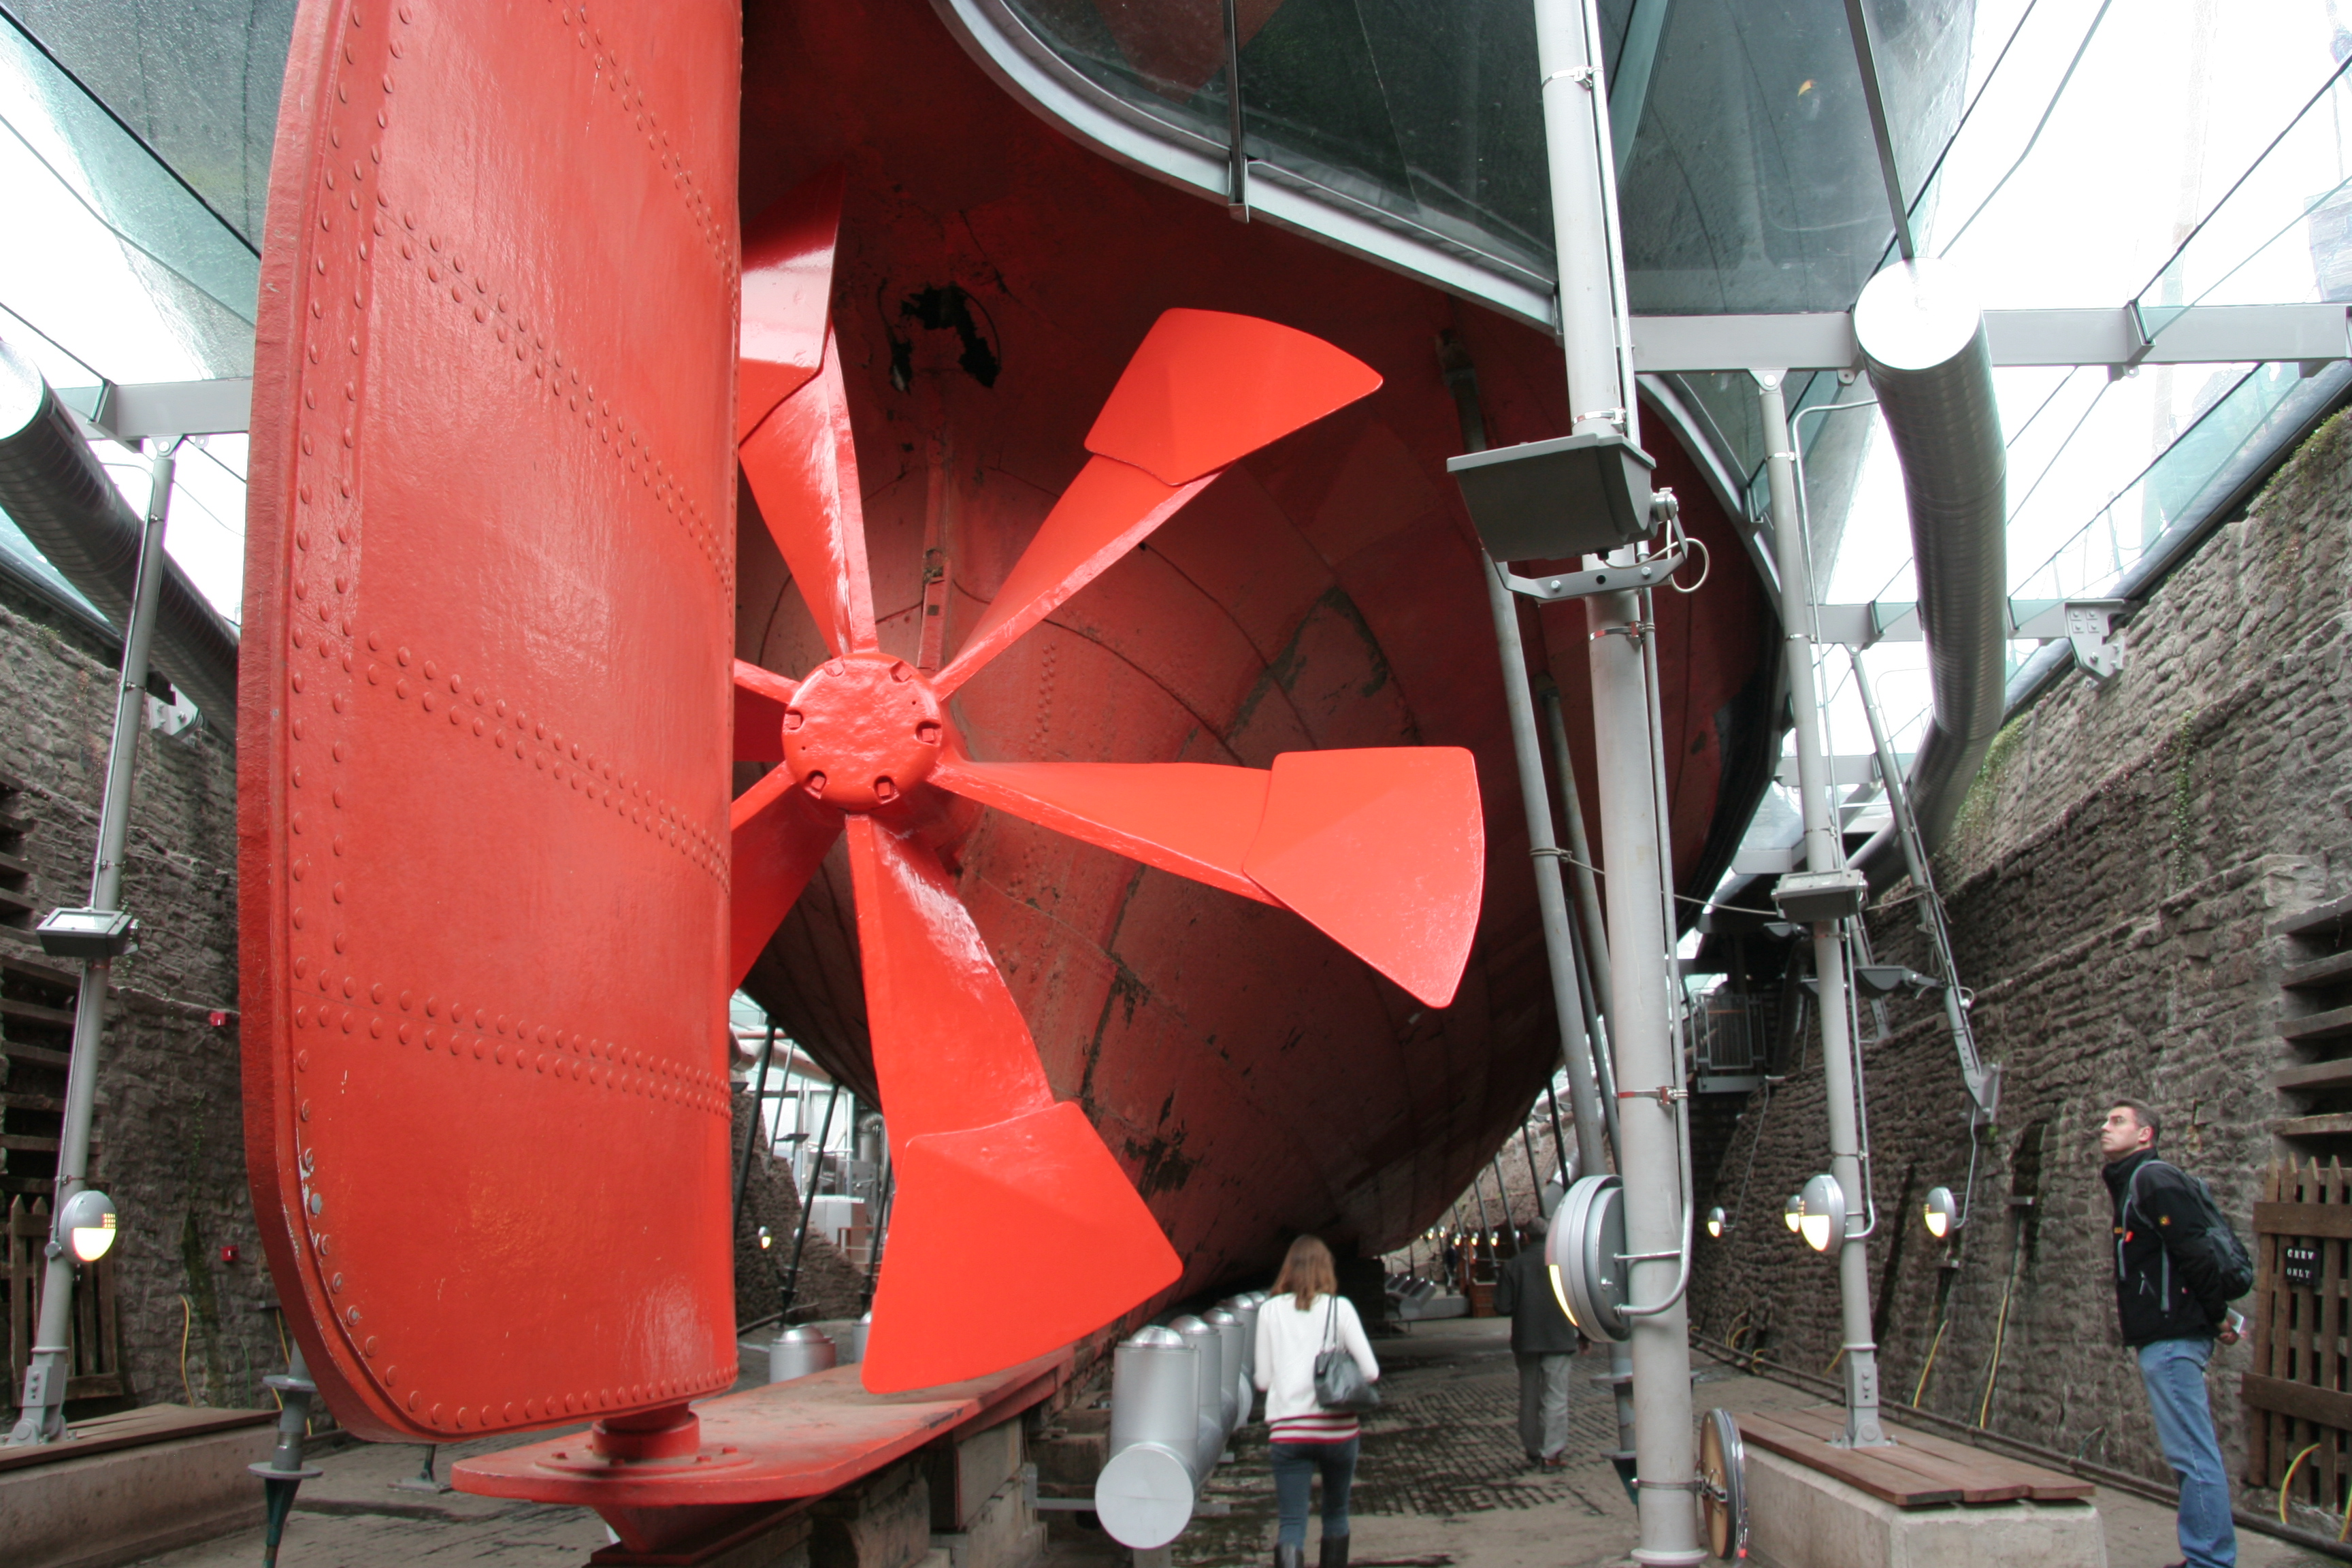 Replica of Great Britain's original six-bladed propeller on the museum ship. This propeller proved totally unsatisfactory in service and was quickly replaced with a four-bladed model. Photo taken on September 27, 2008.